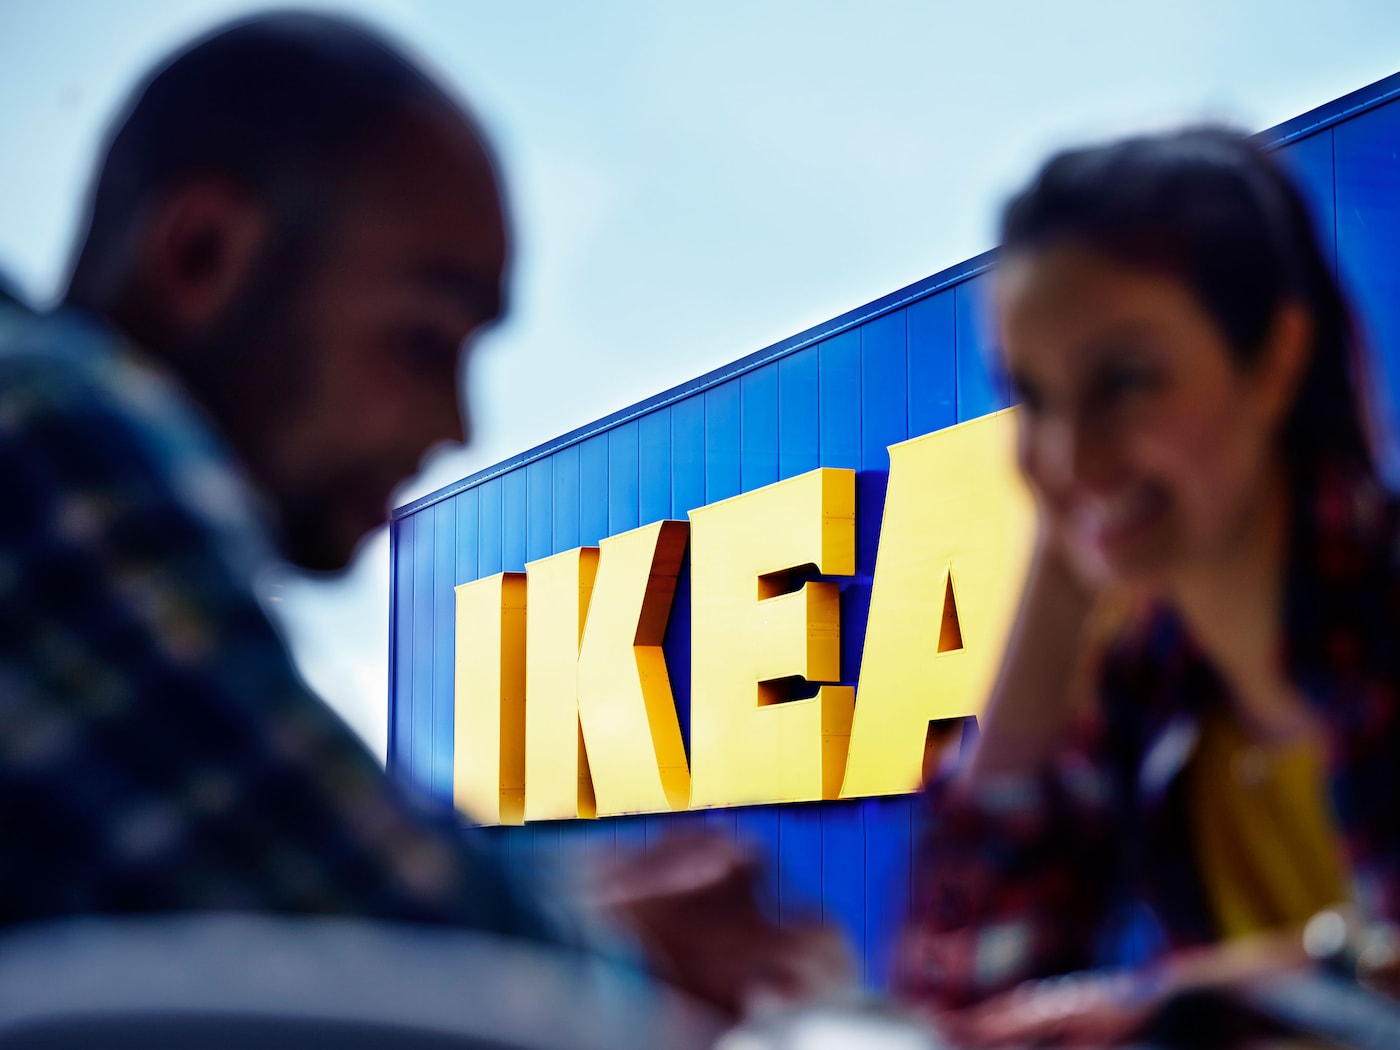 A couple is having a chat in front of the IKEA entrance.